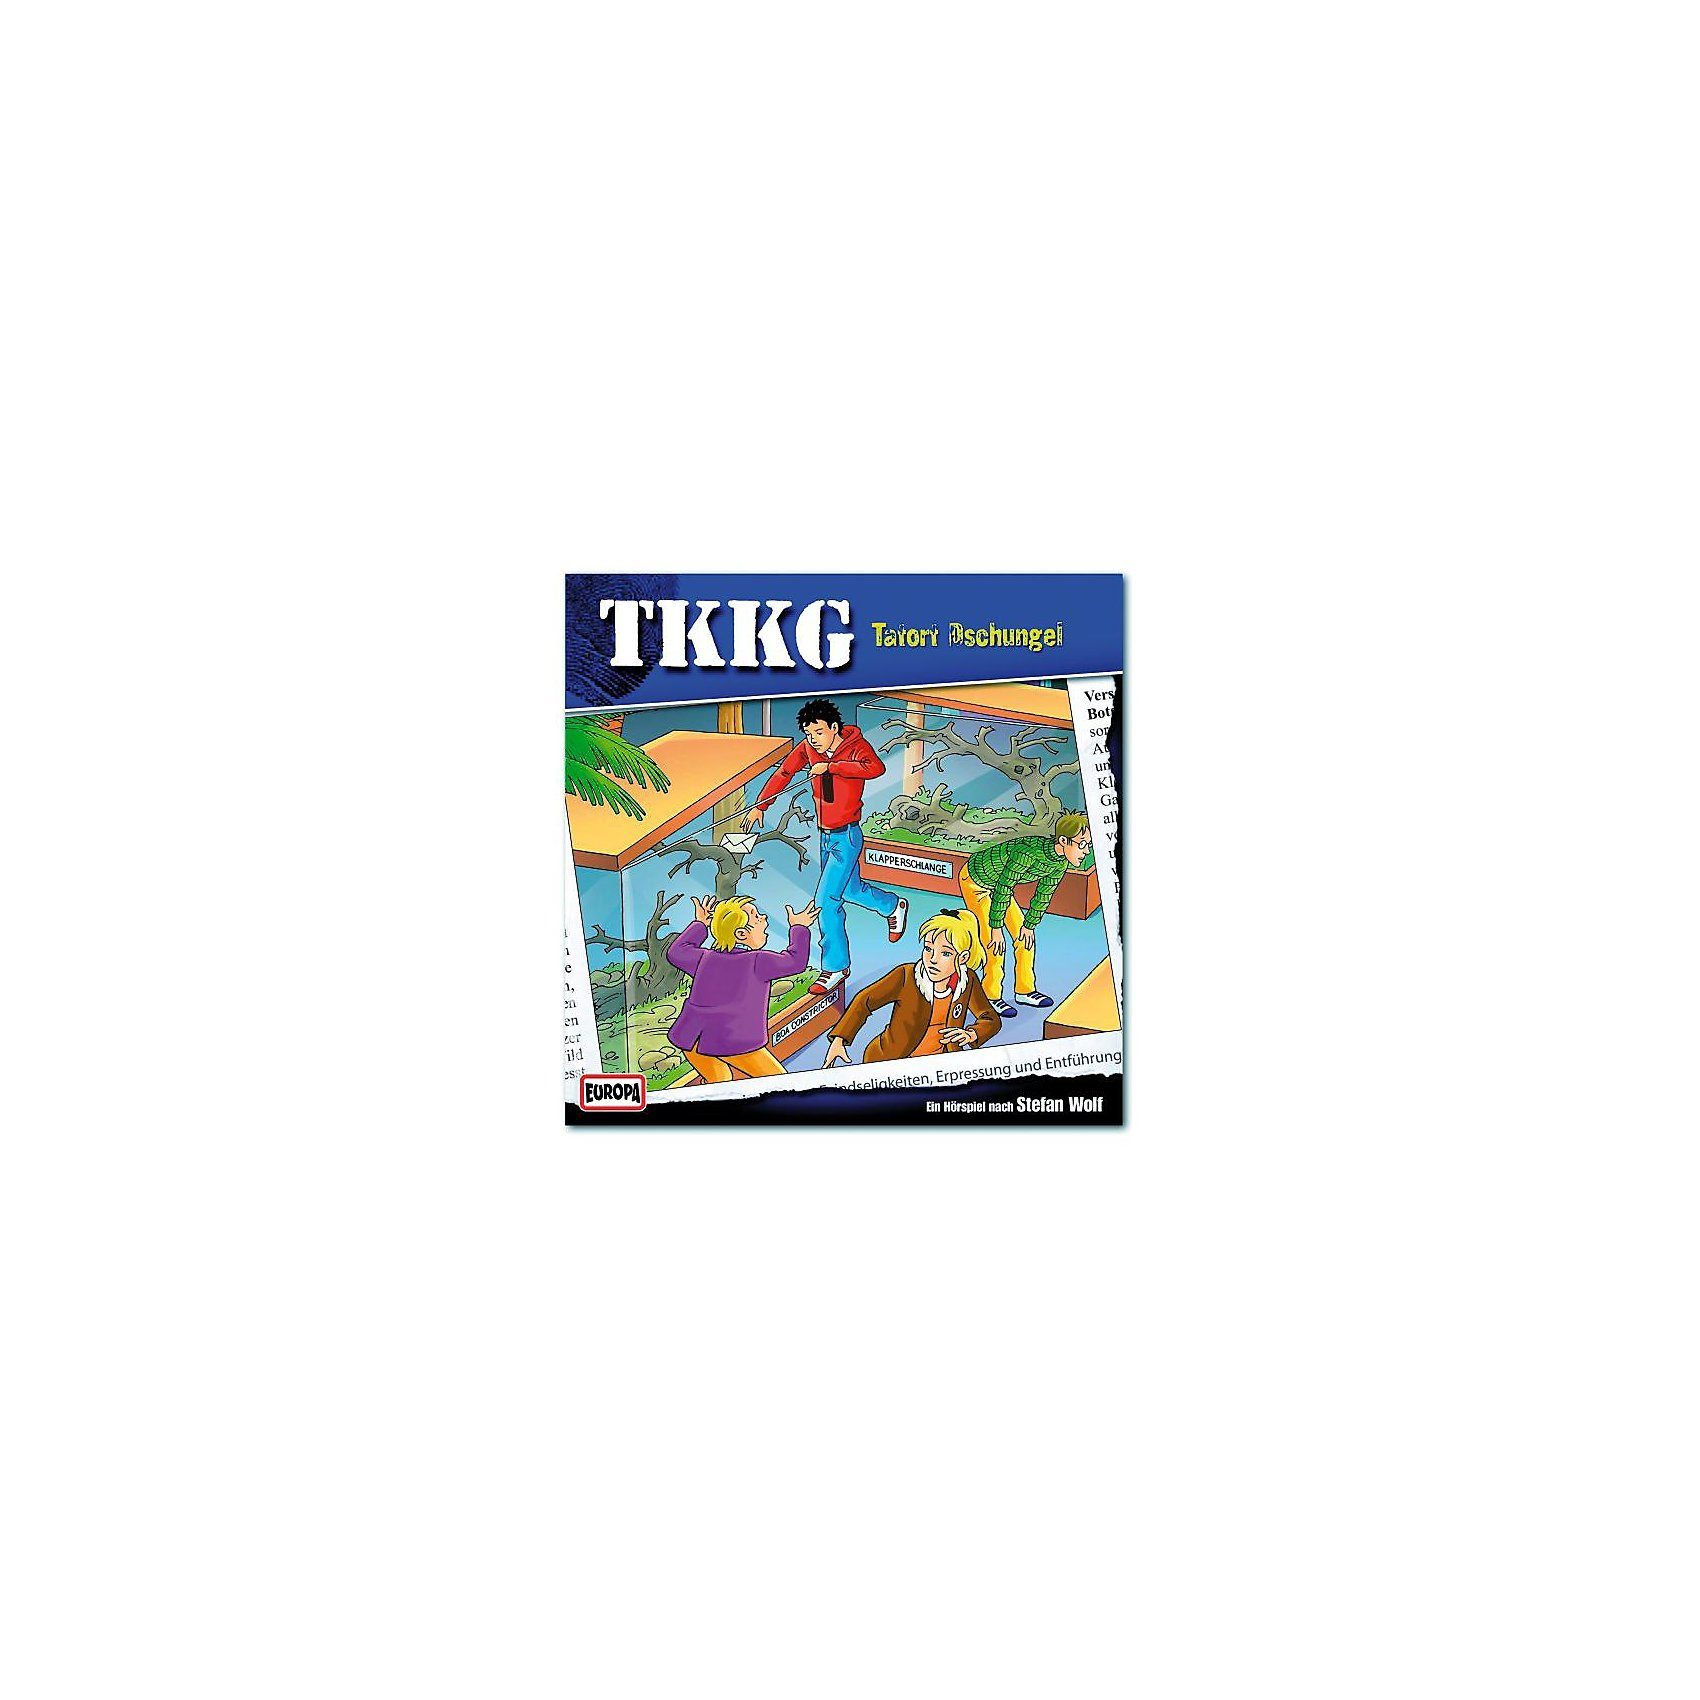 SONY BMG MUSIC CD TKKG 169 - Tatort Dschungel